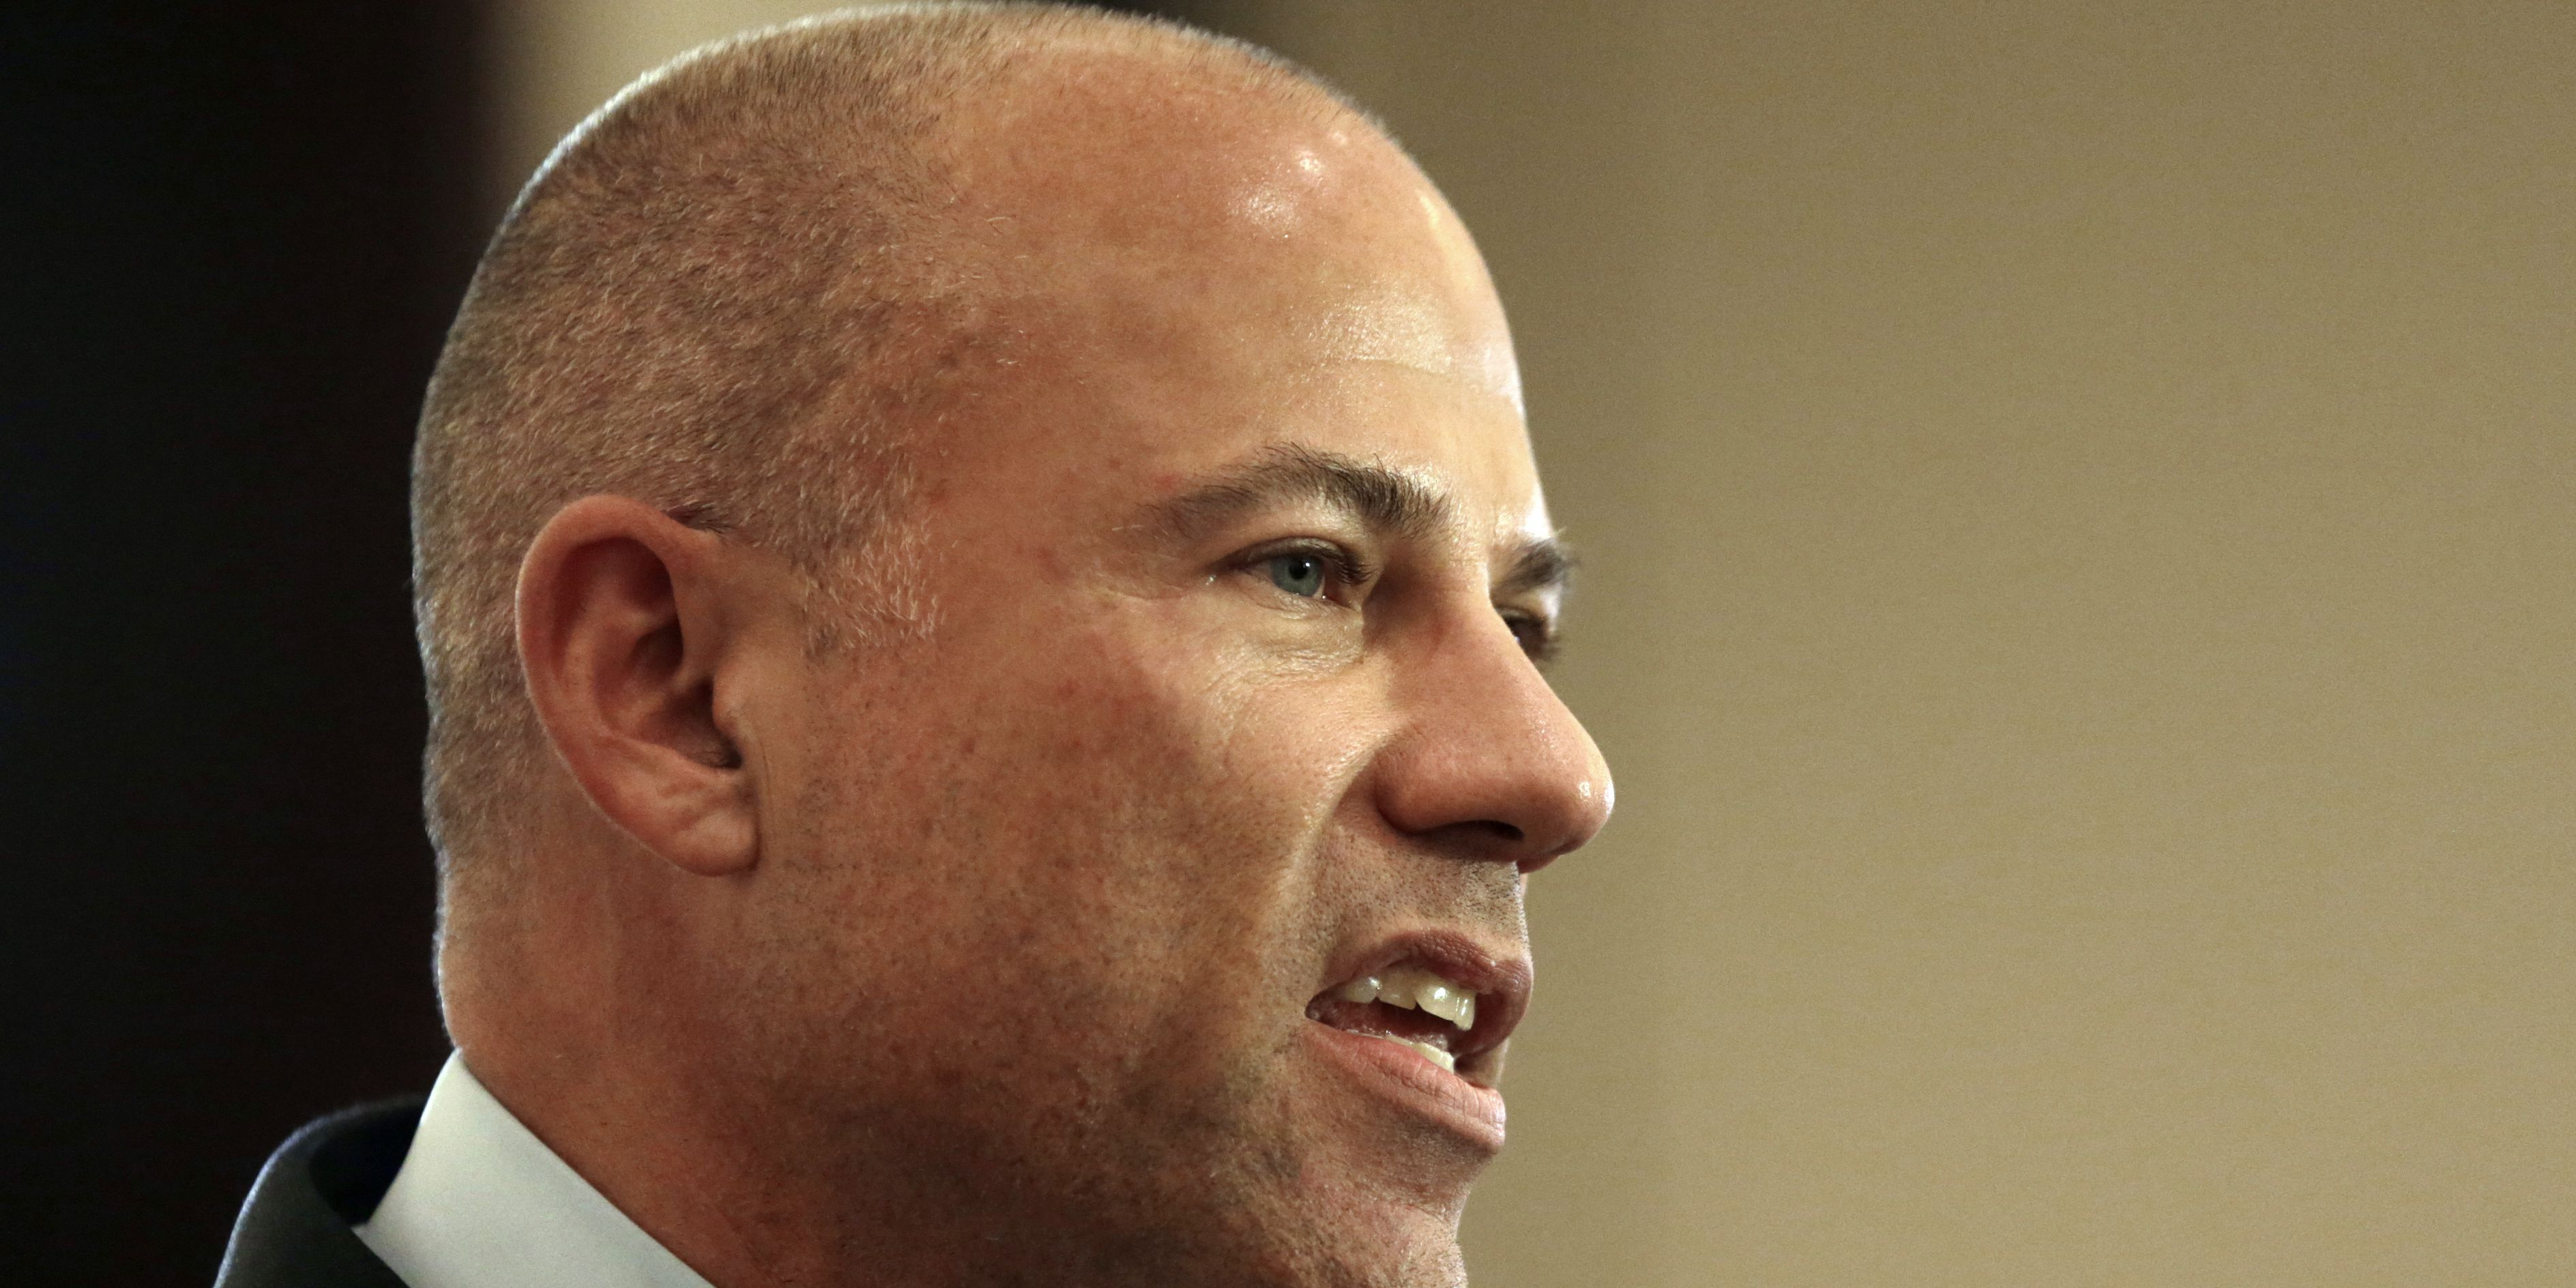 Michael Avenatti charged with trying to extort millions from Nike